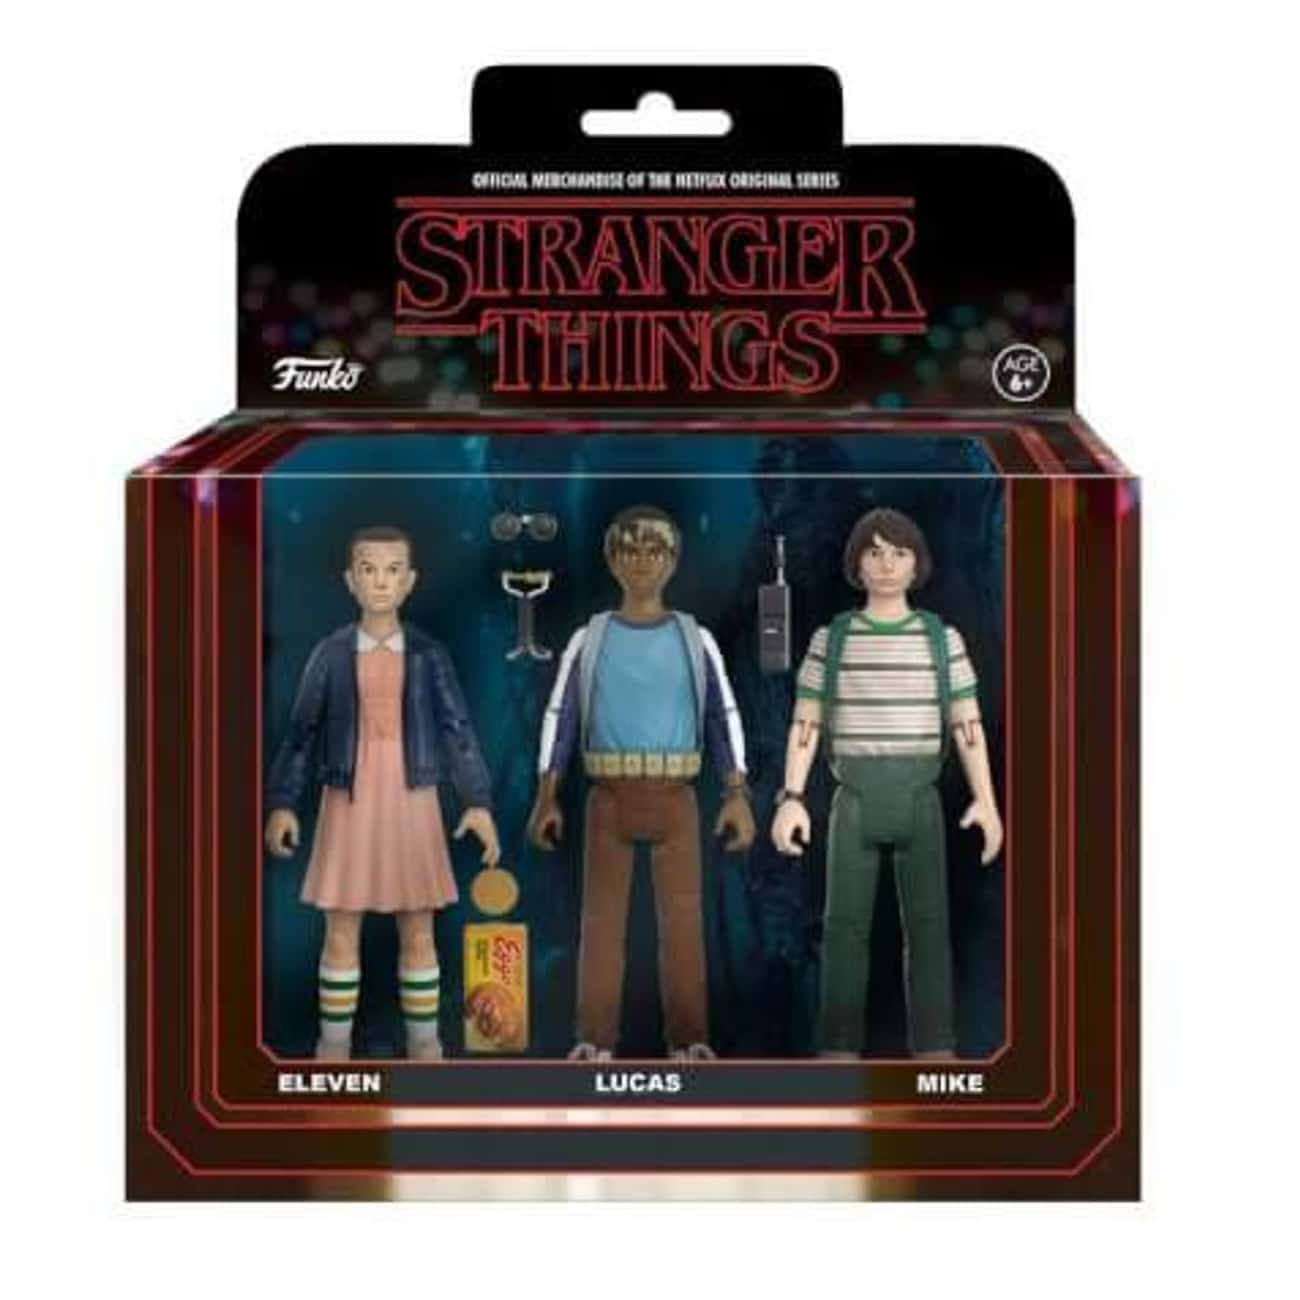 Stranger Things Action Figures is listed (or ranked) 4 on the list The Absolute Best Stranger Things Merch You Can Rep To Let Everyone Now How Awesome You Are